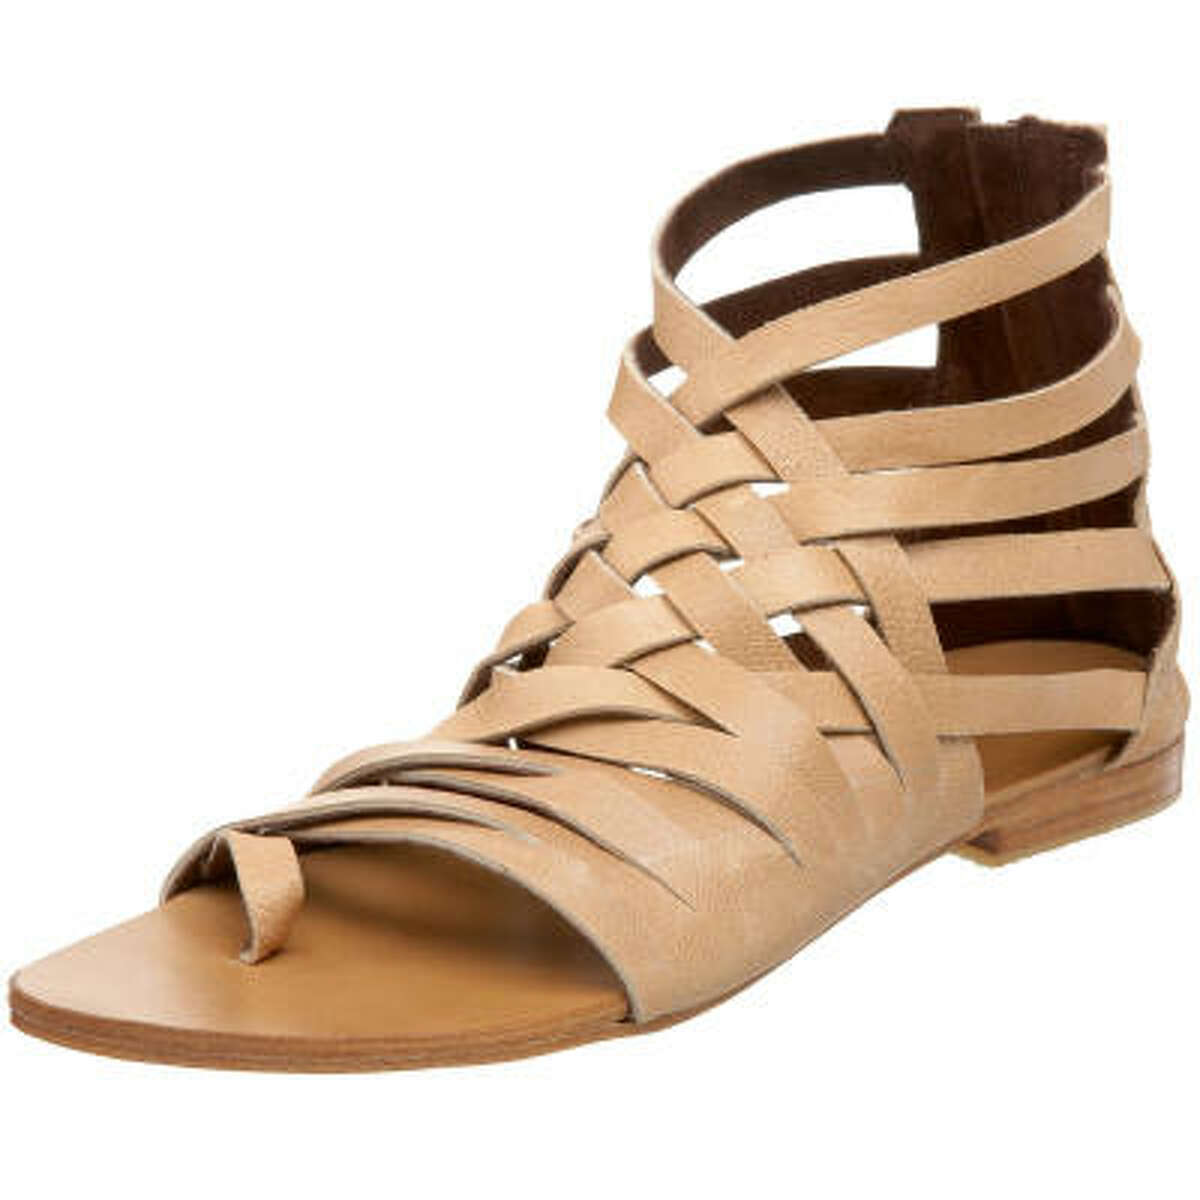 And don't worry if you stocked up on gladiator sandals last year, they're more popular than ever in 2010. Cocobelle Grecian Sandal, $165, at endless.com